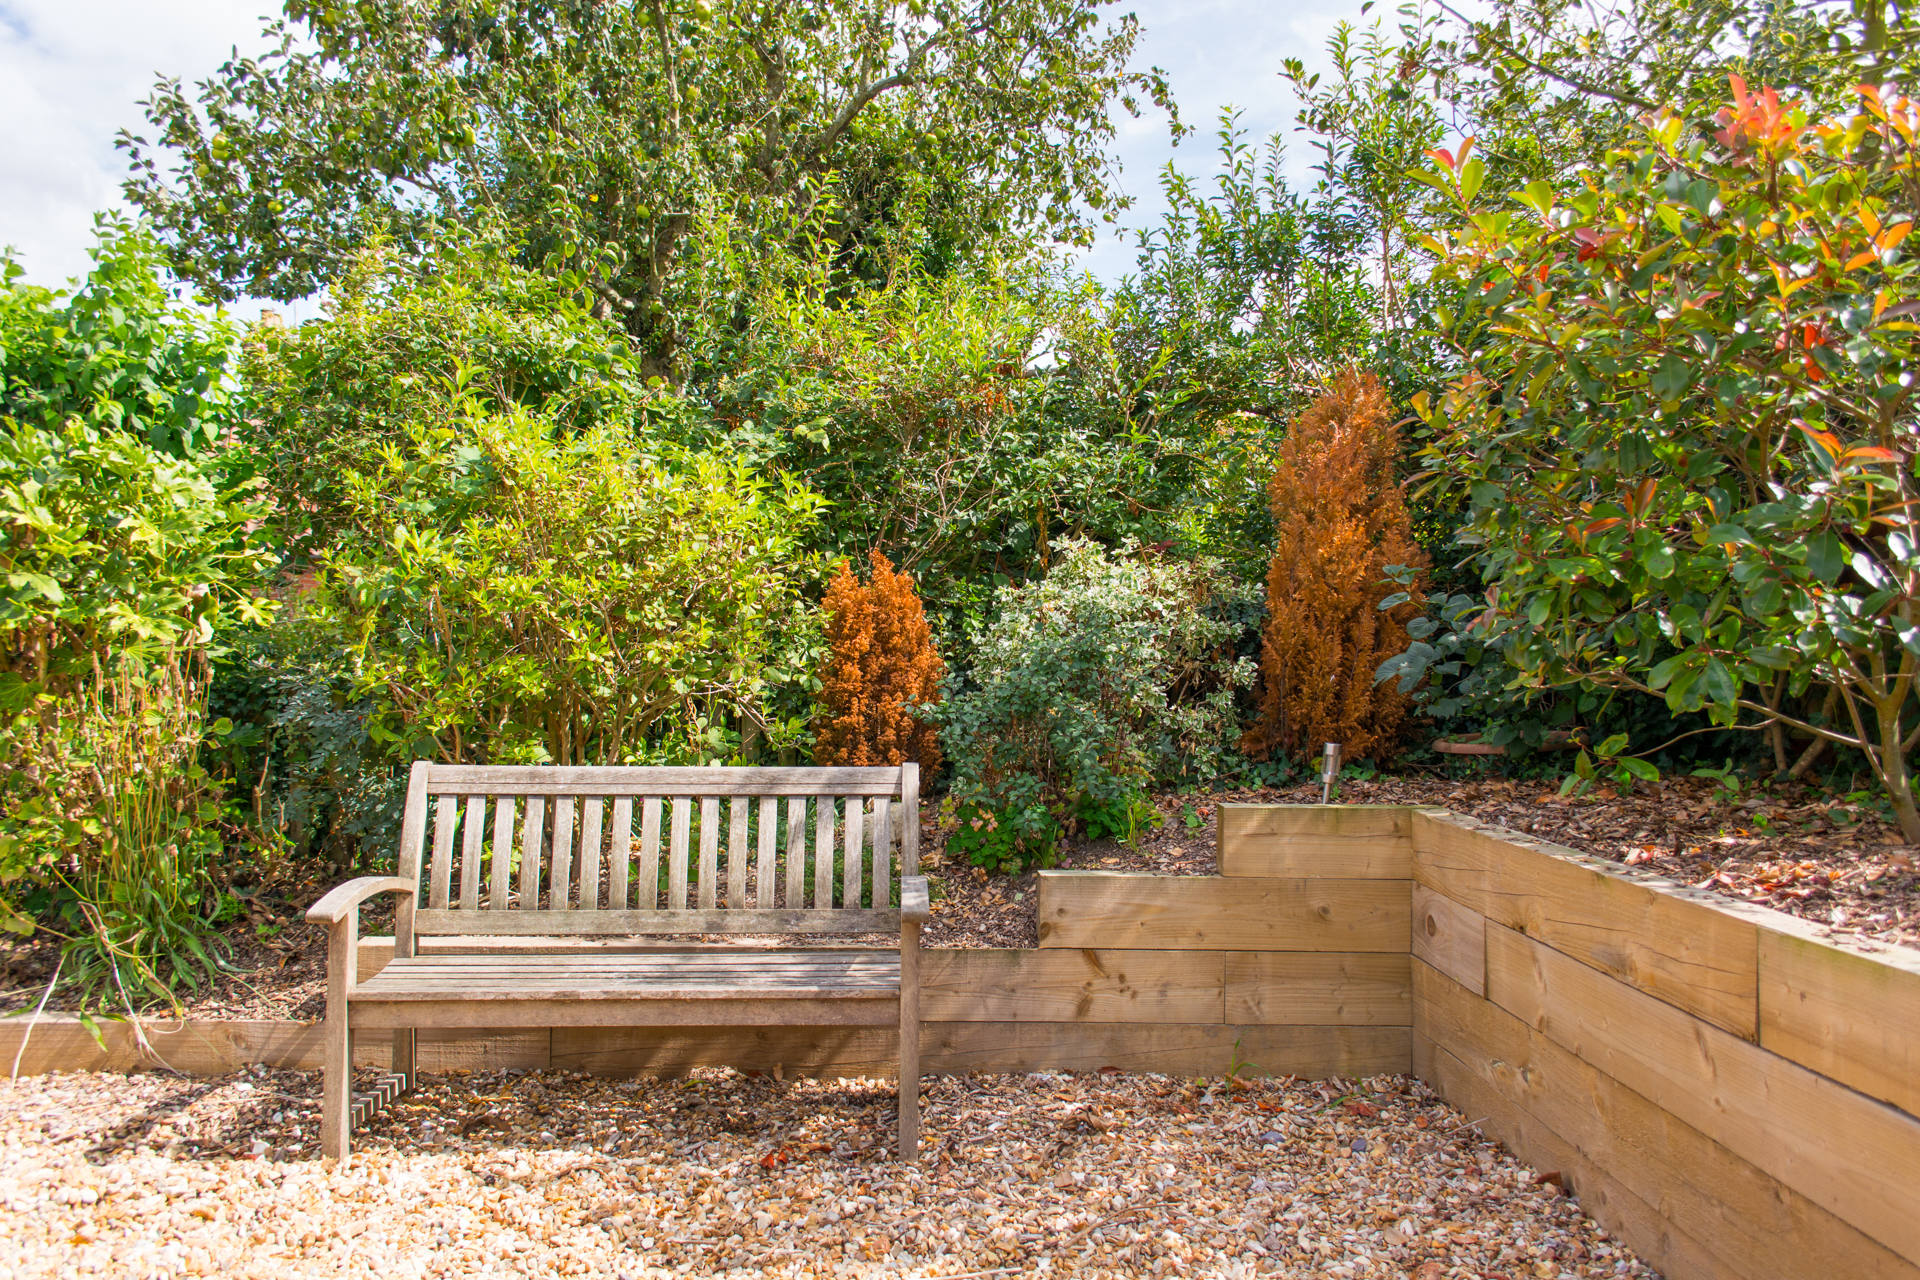 Garden bench with shingle and plant beds.